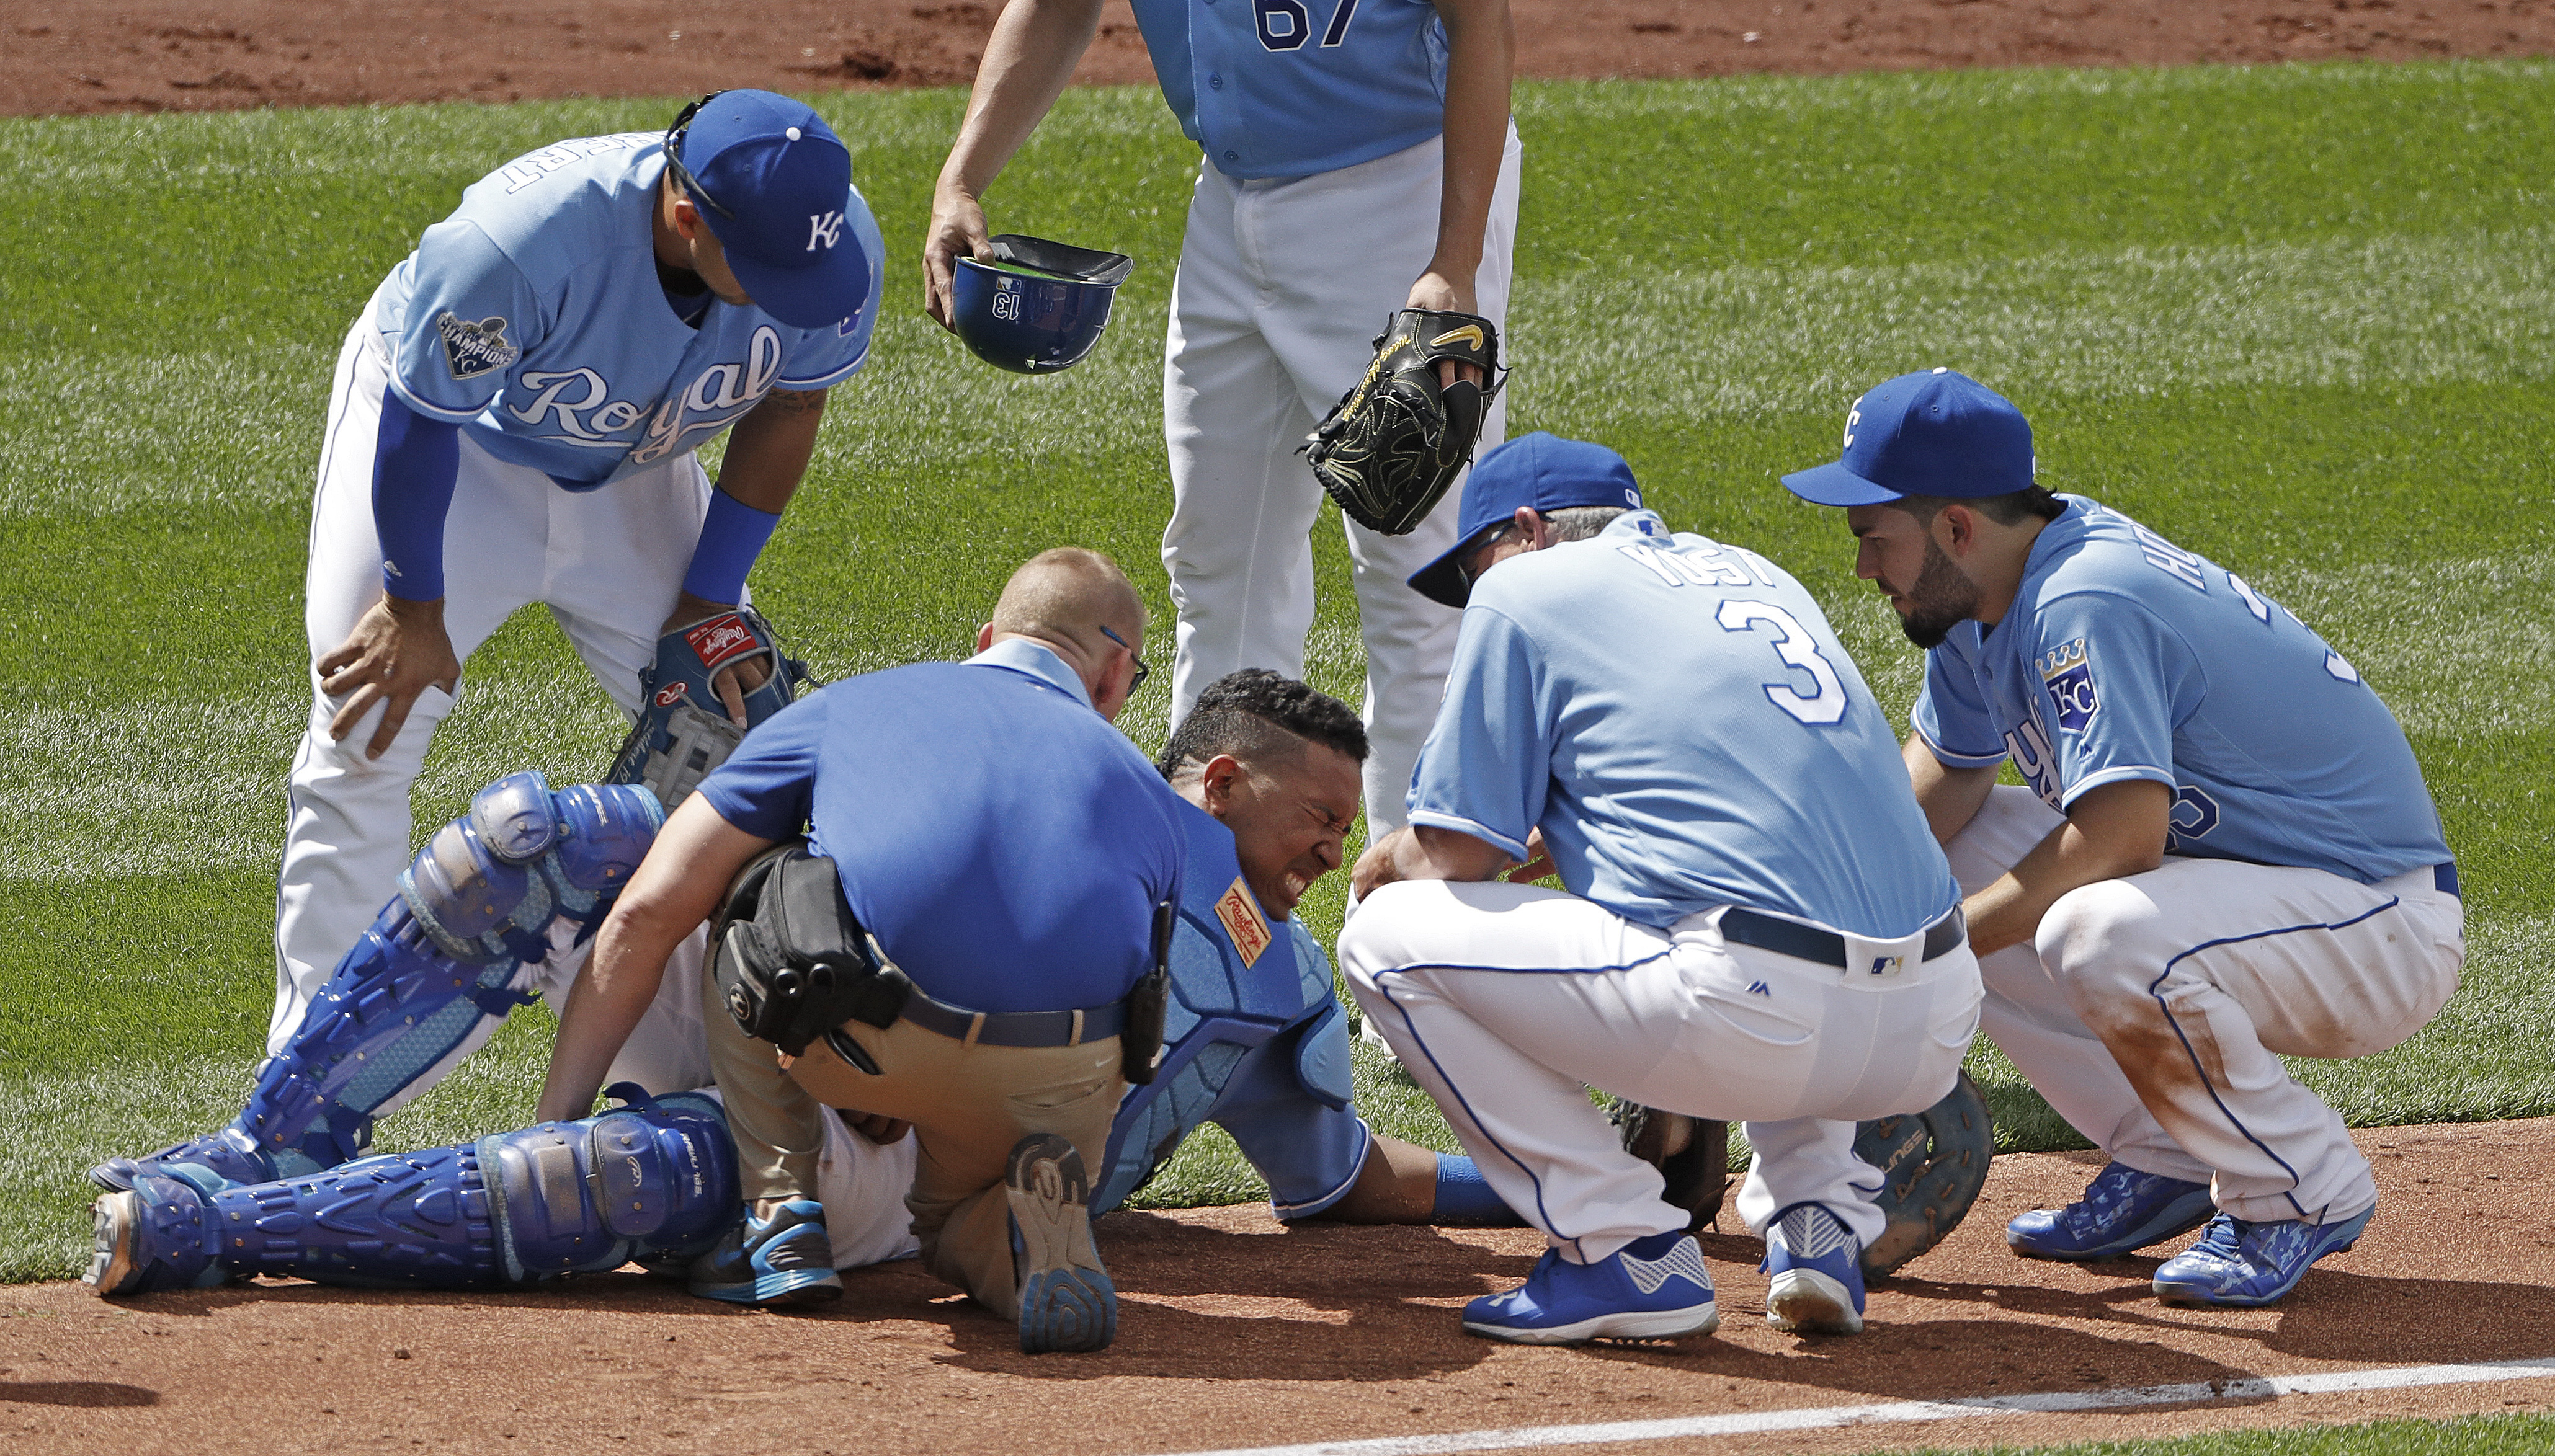 Kansas City Royals catcher Salvador Perez, center, is tended to after a collision following his catch of a fly foul ball for the out on Chicago White Sox's Adam Eaton during the ninth inning of a baseball game Saturday, May 28, 2016, in Kansas City, Mo. T